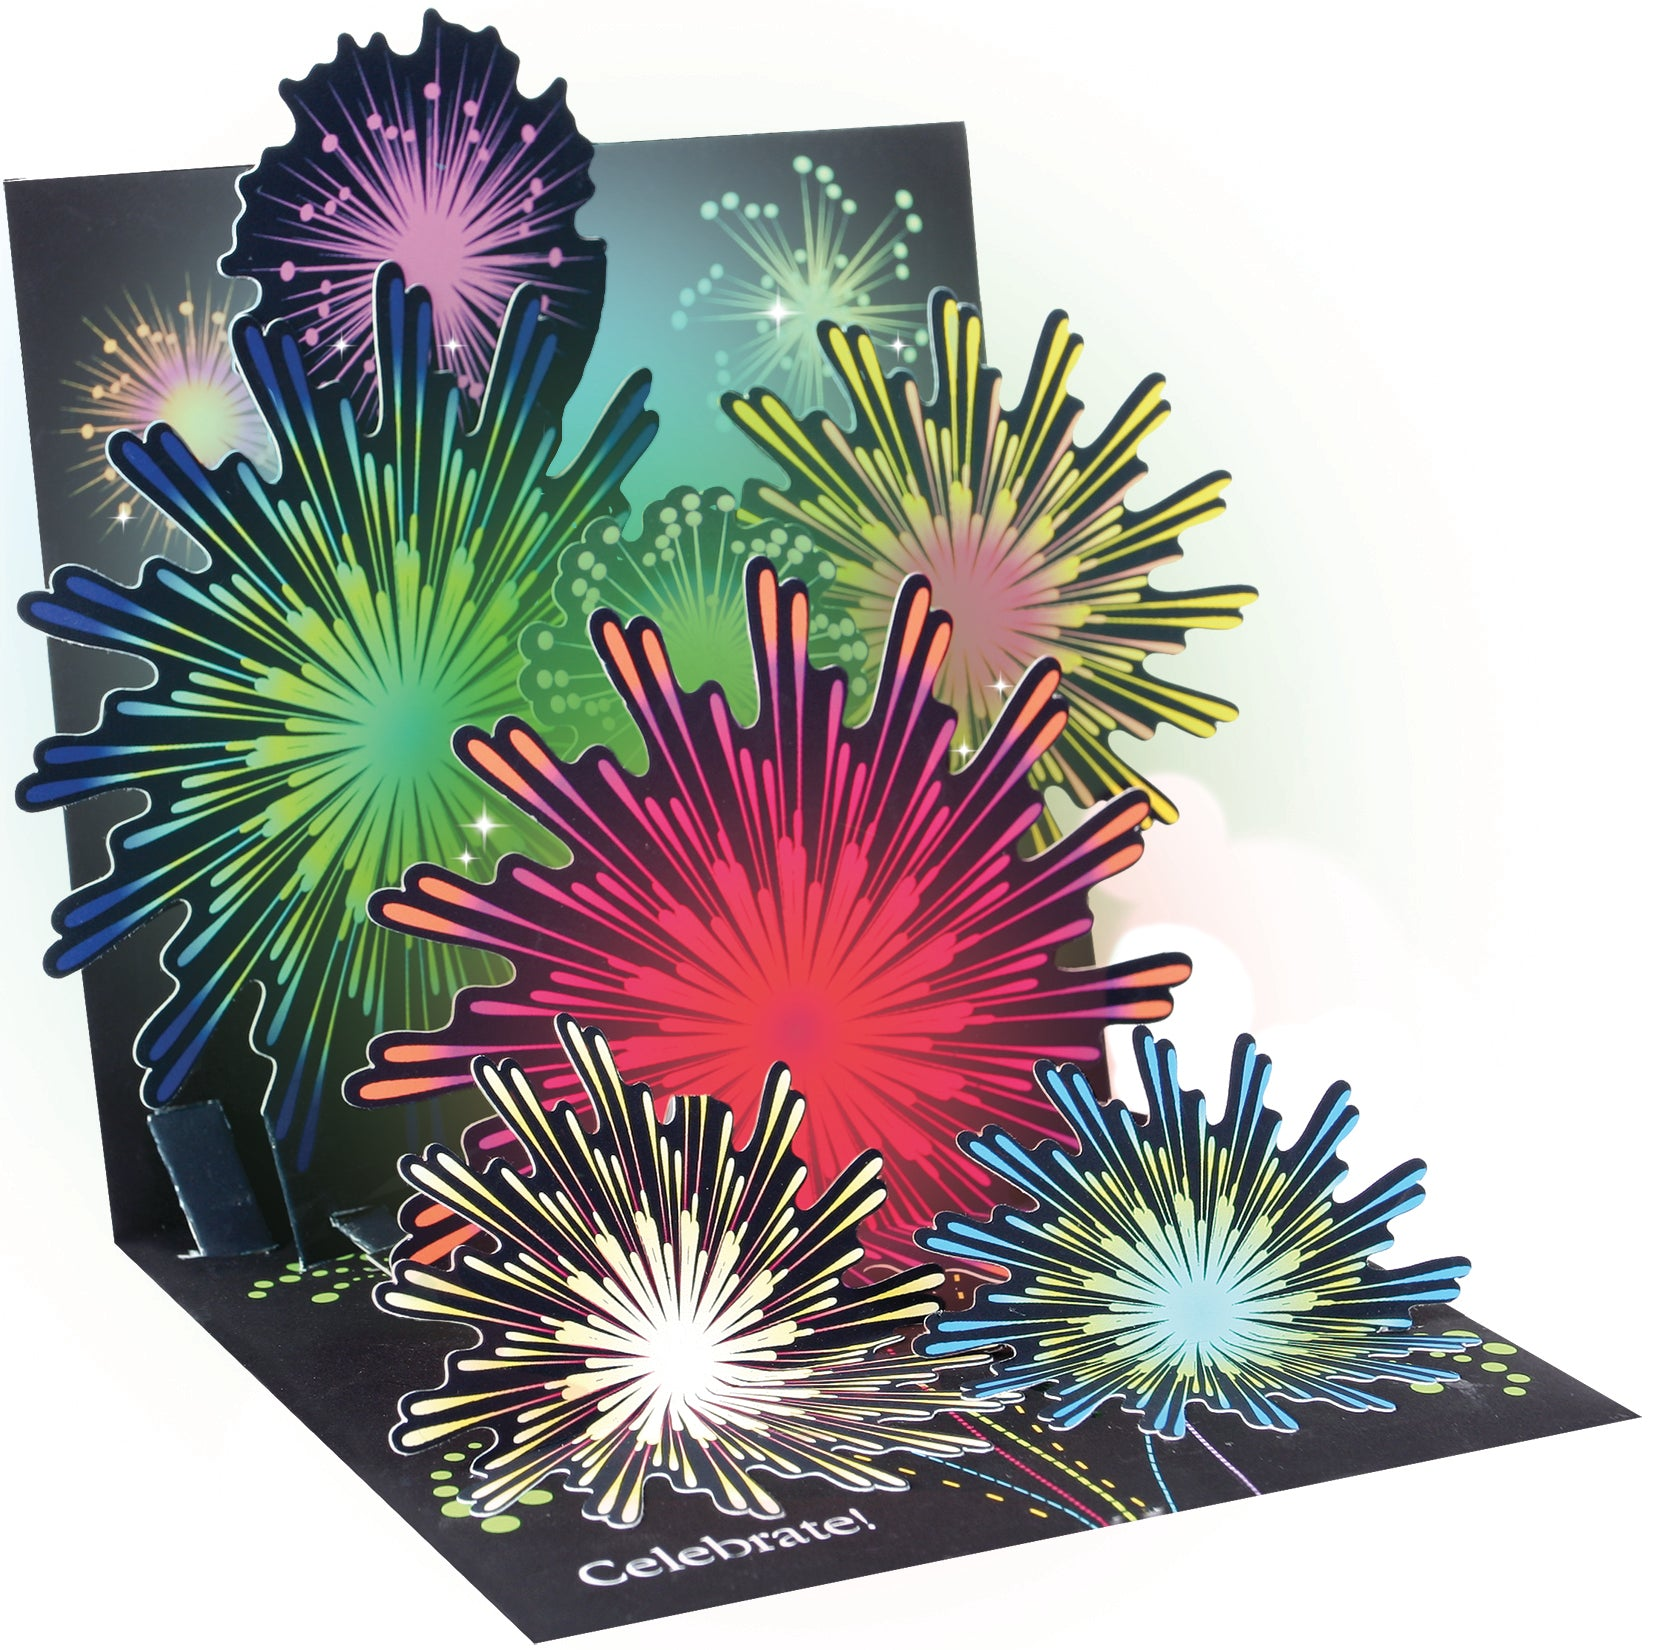 Lit Fireworks Pop-Up Card - Heart of the Home PA